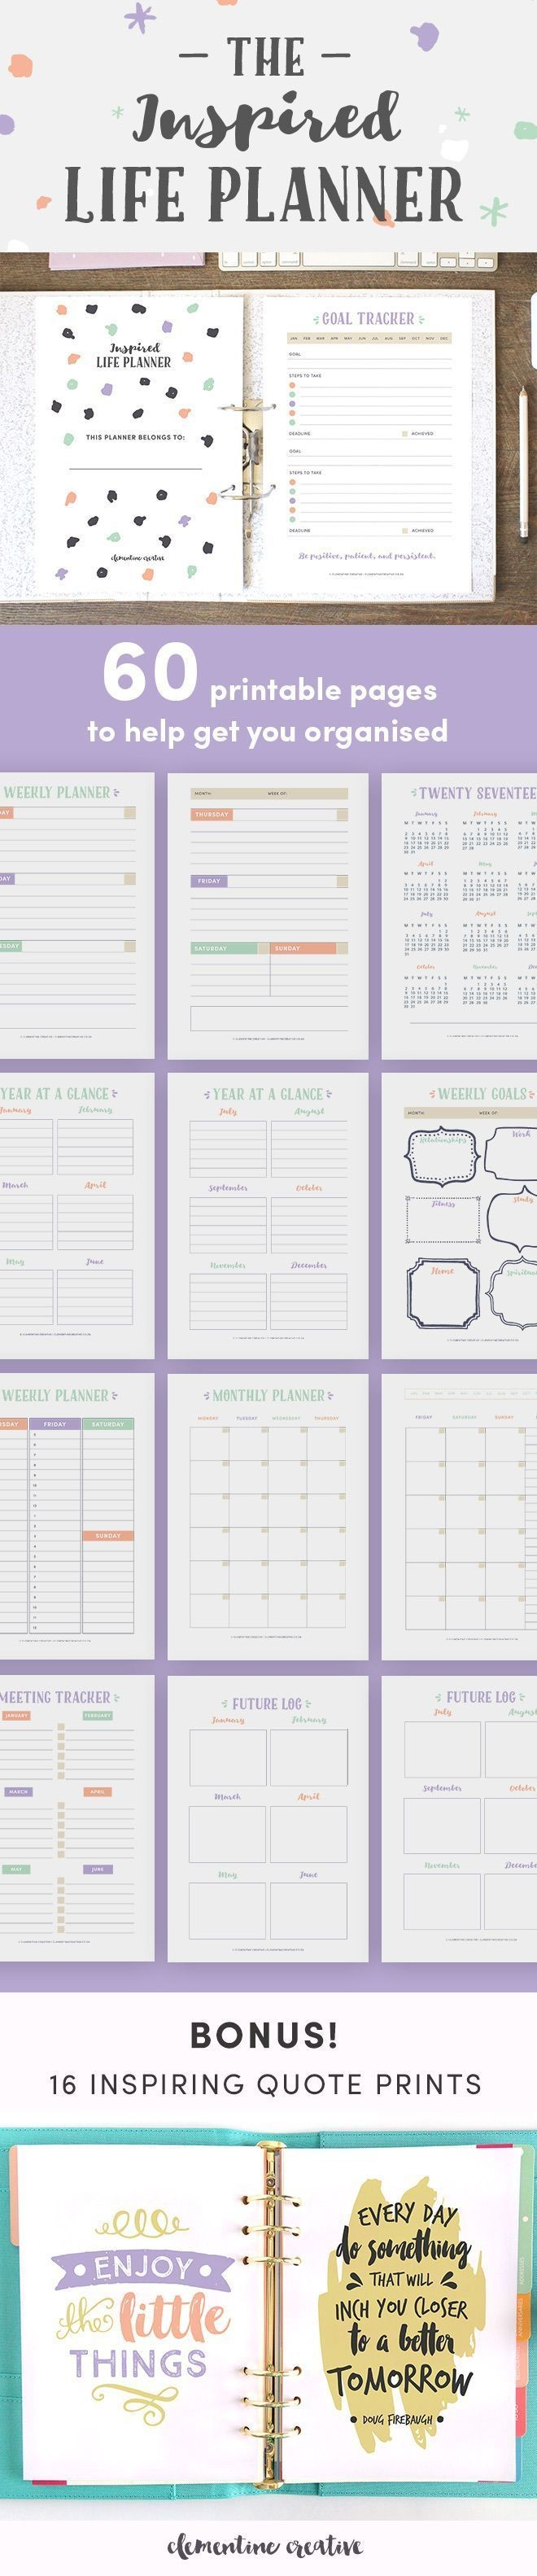 The Inspired Life Planner a pretty printable planner for 2018